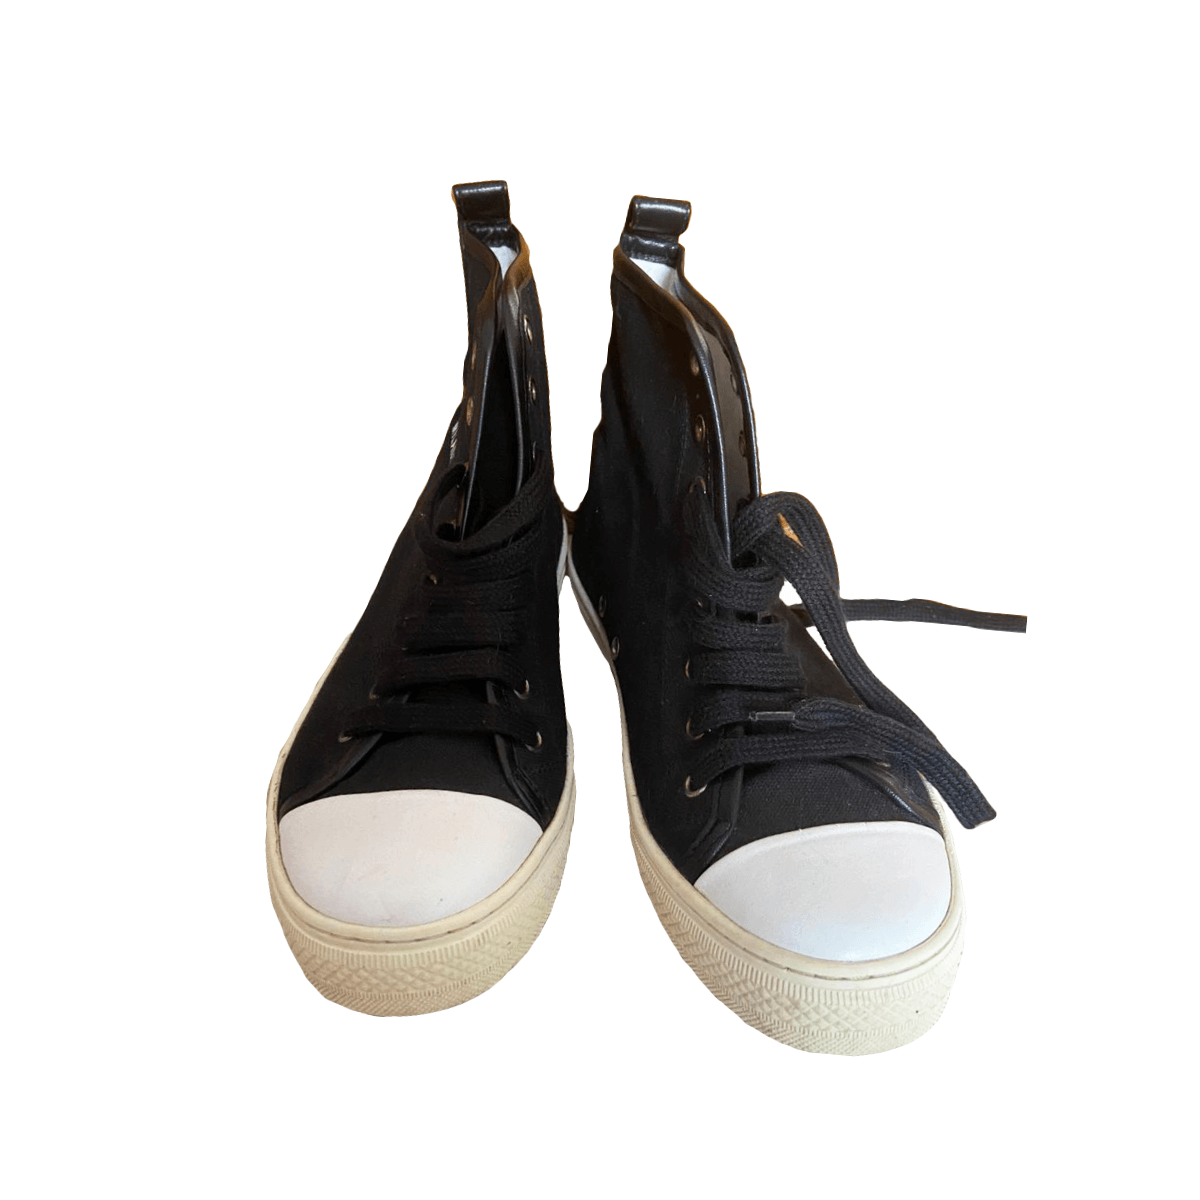 Moschino Canvas Trainers Size - 7 UK